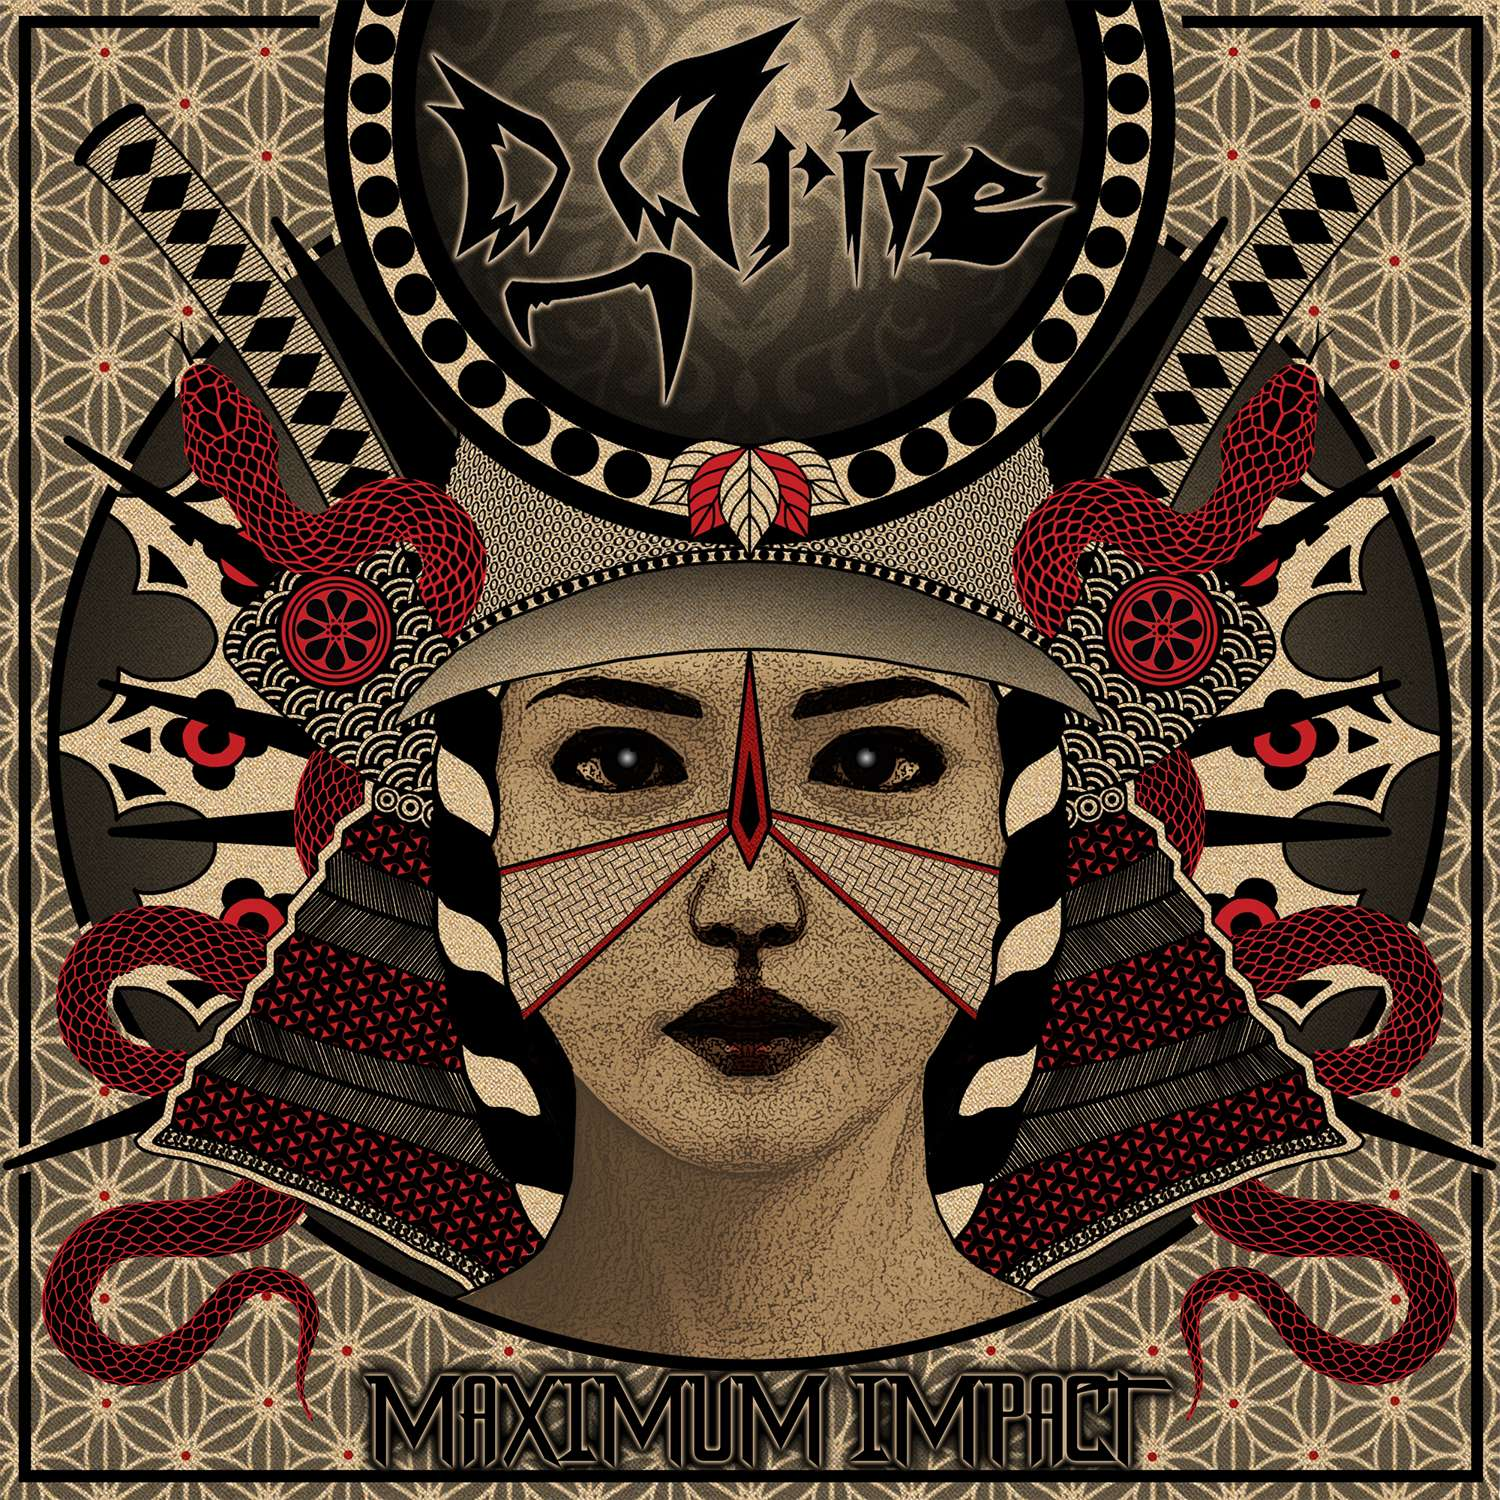 D_Drive - Album artwork